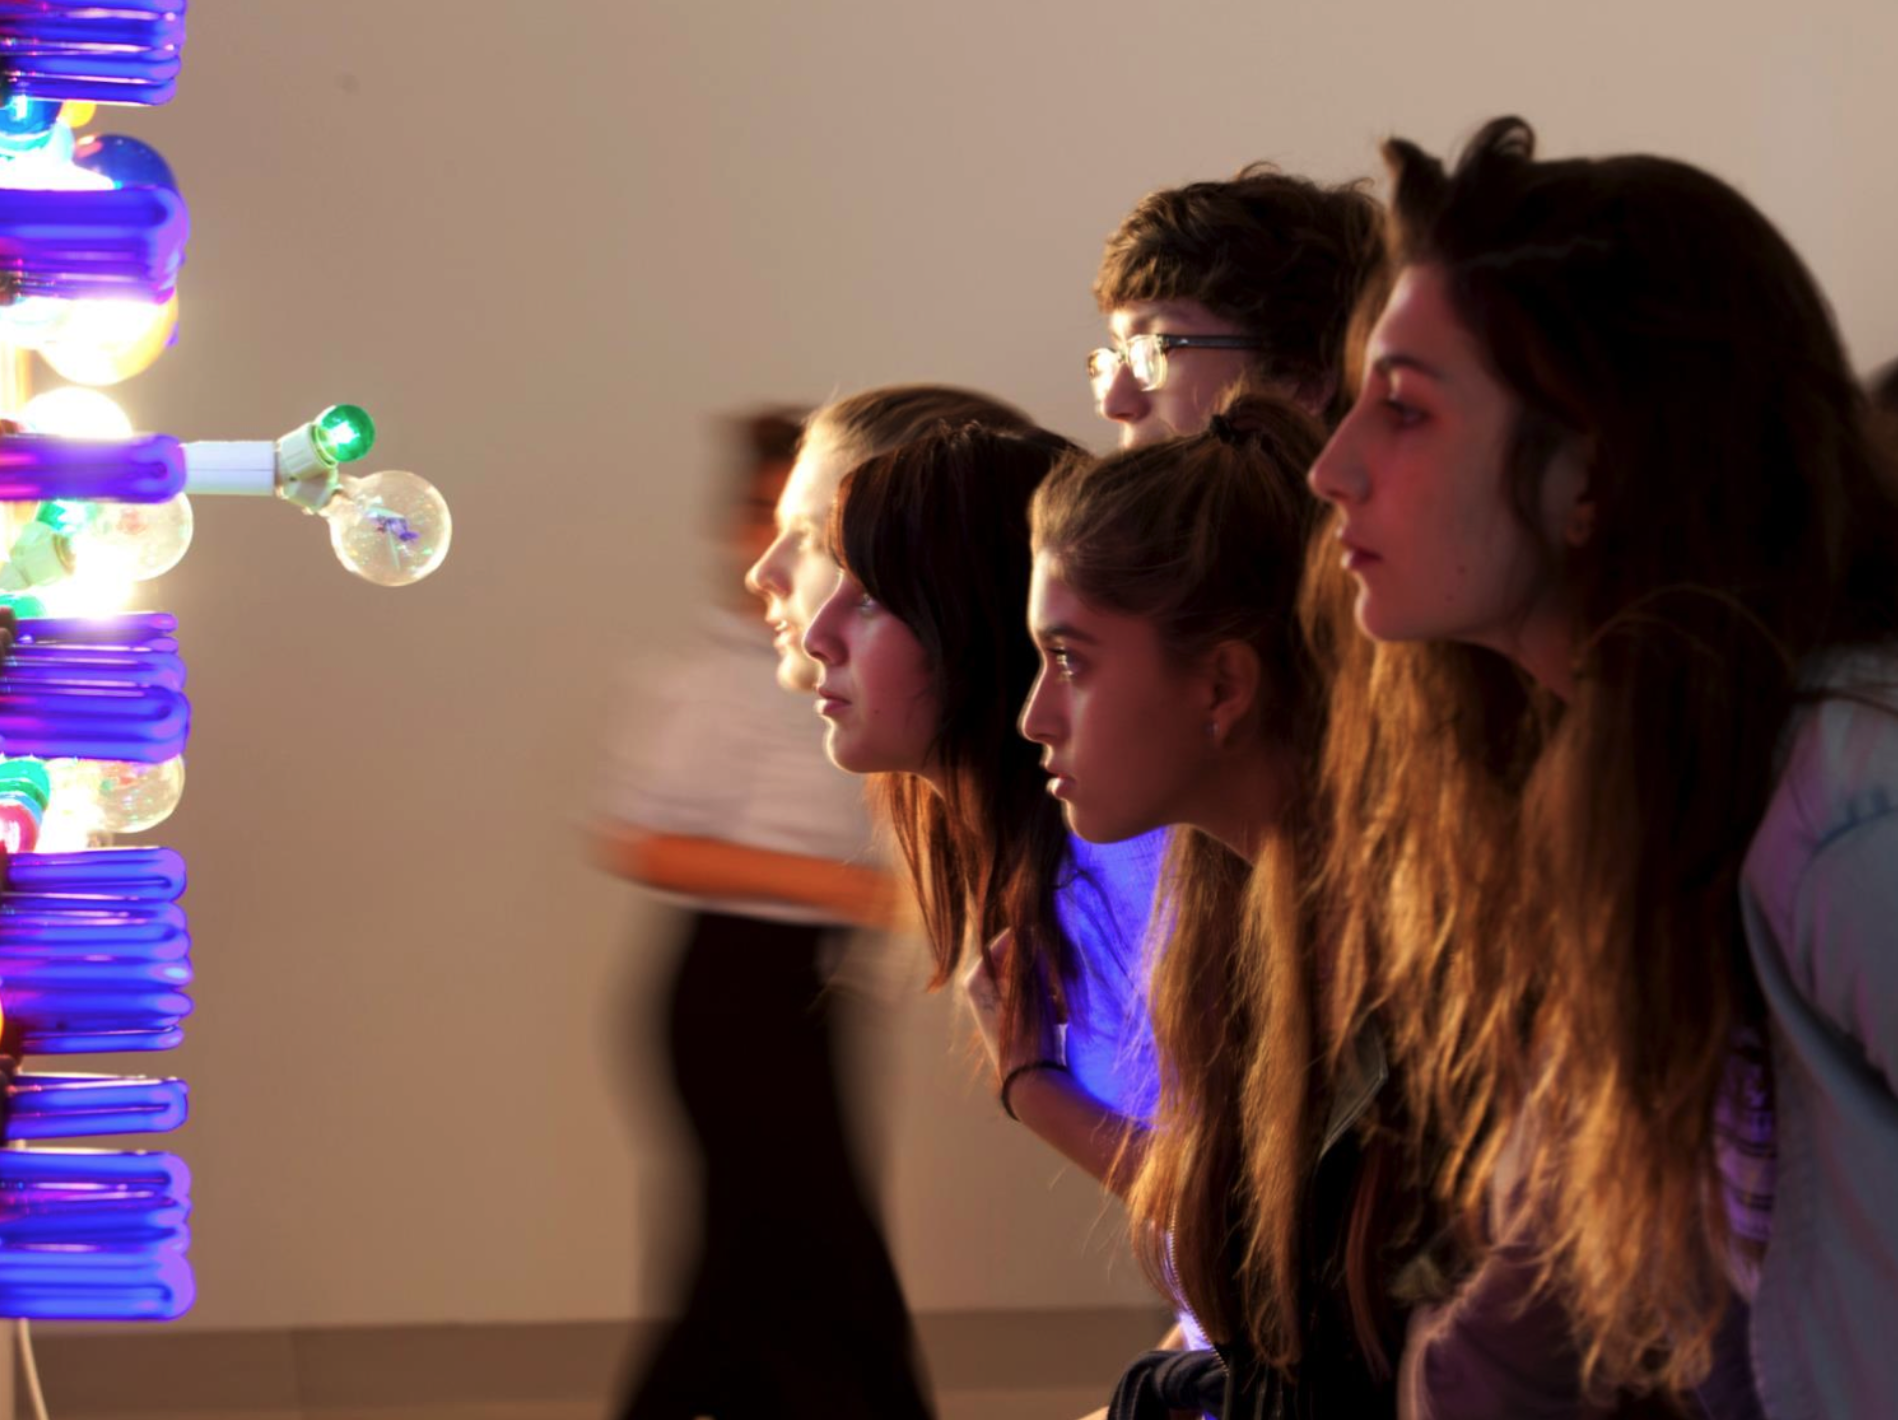 Four young students staring at a sculpture of neon and incandescent lightbulbs - their faces illuminated by the bulbs